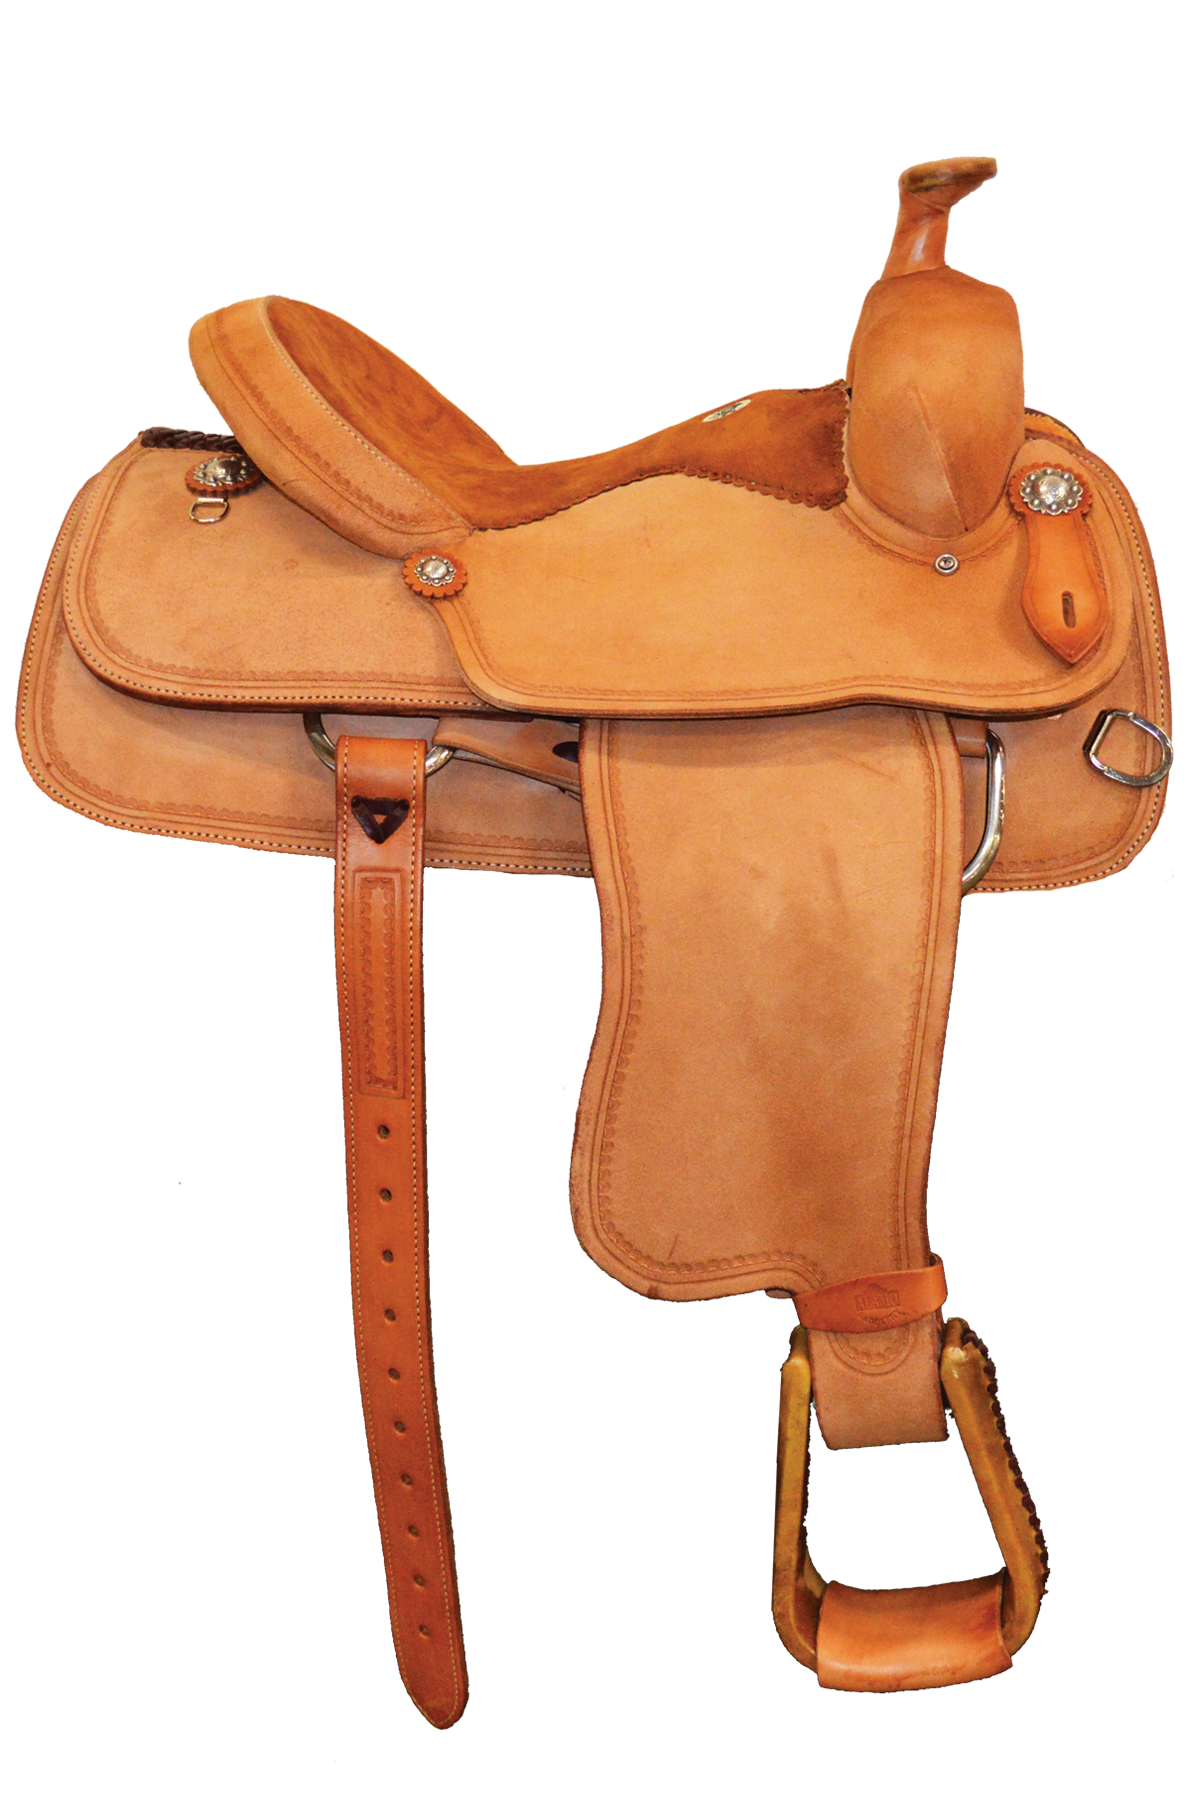 SD-16 Roper Saddle in light rough out with suede seat